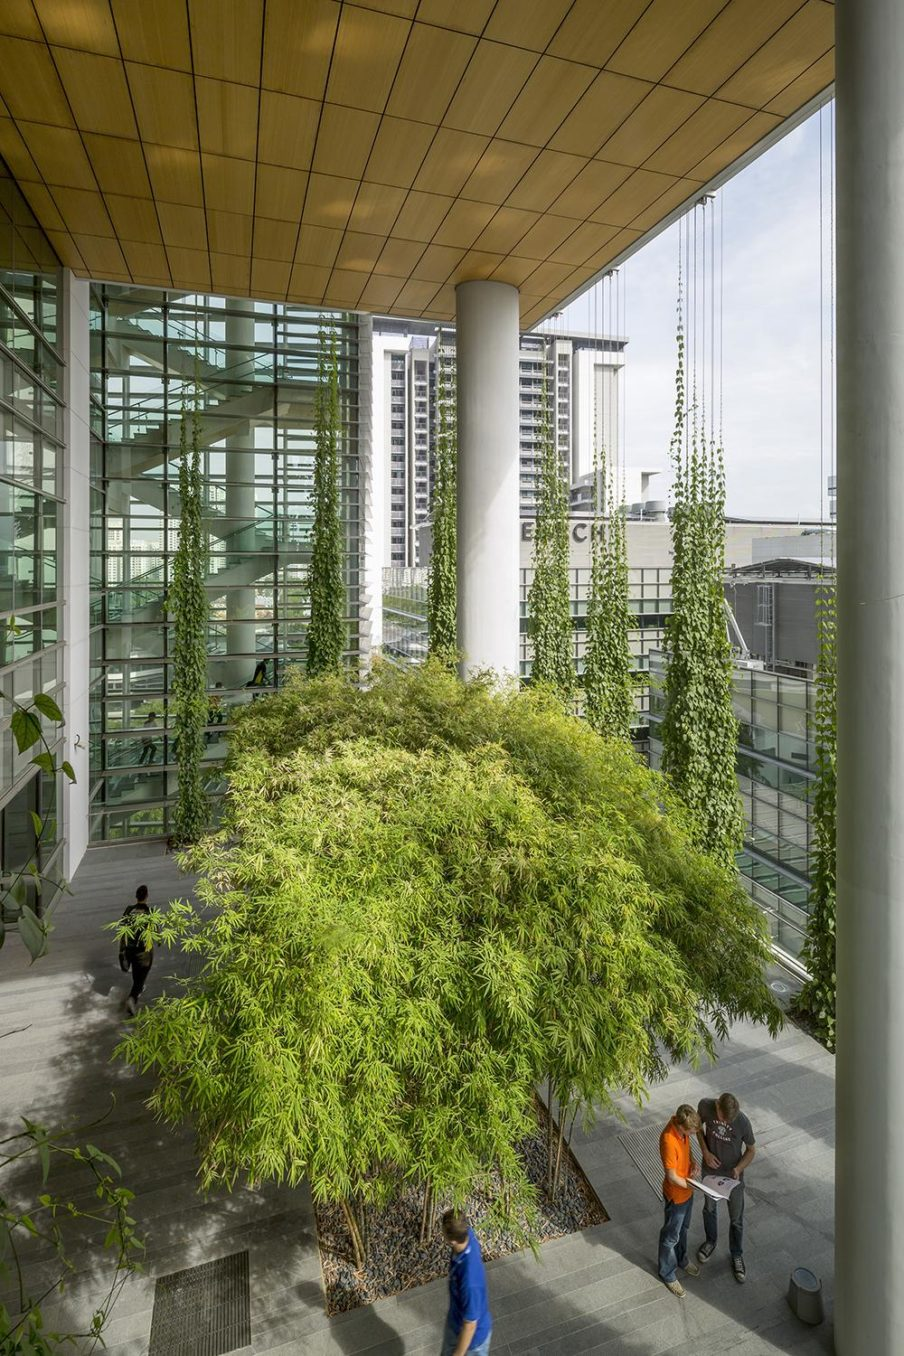 The integration of nature into the campus is profound.  The terraced nature of the buildings allows for multiple opportunities to insert plants into the campus environment.  Trees punctuate meeting spaces, and hanging ivy create curtains around open spaces.